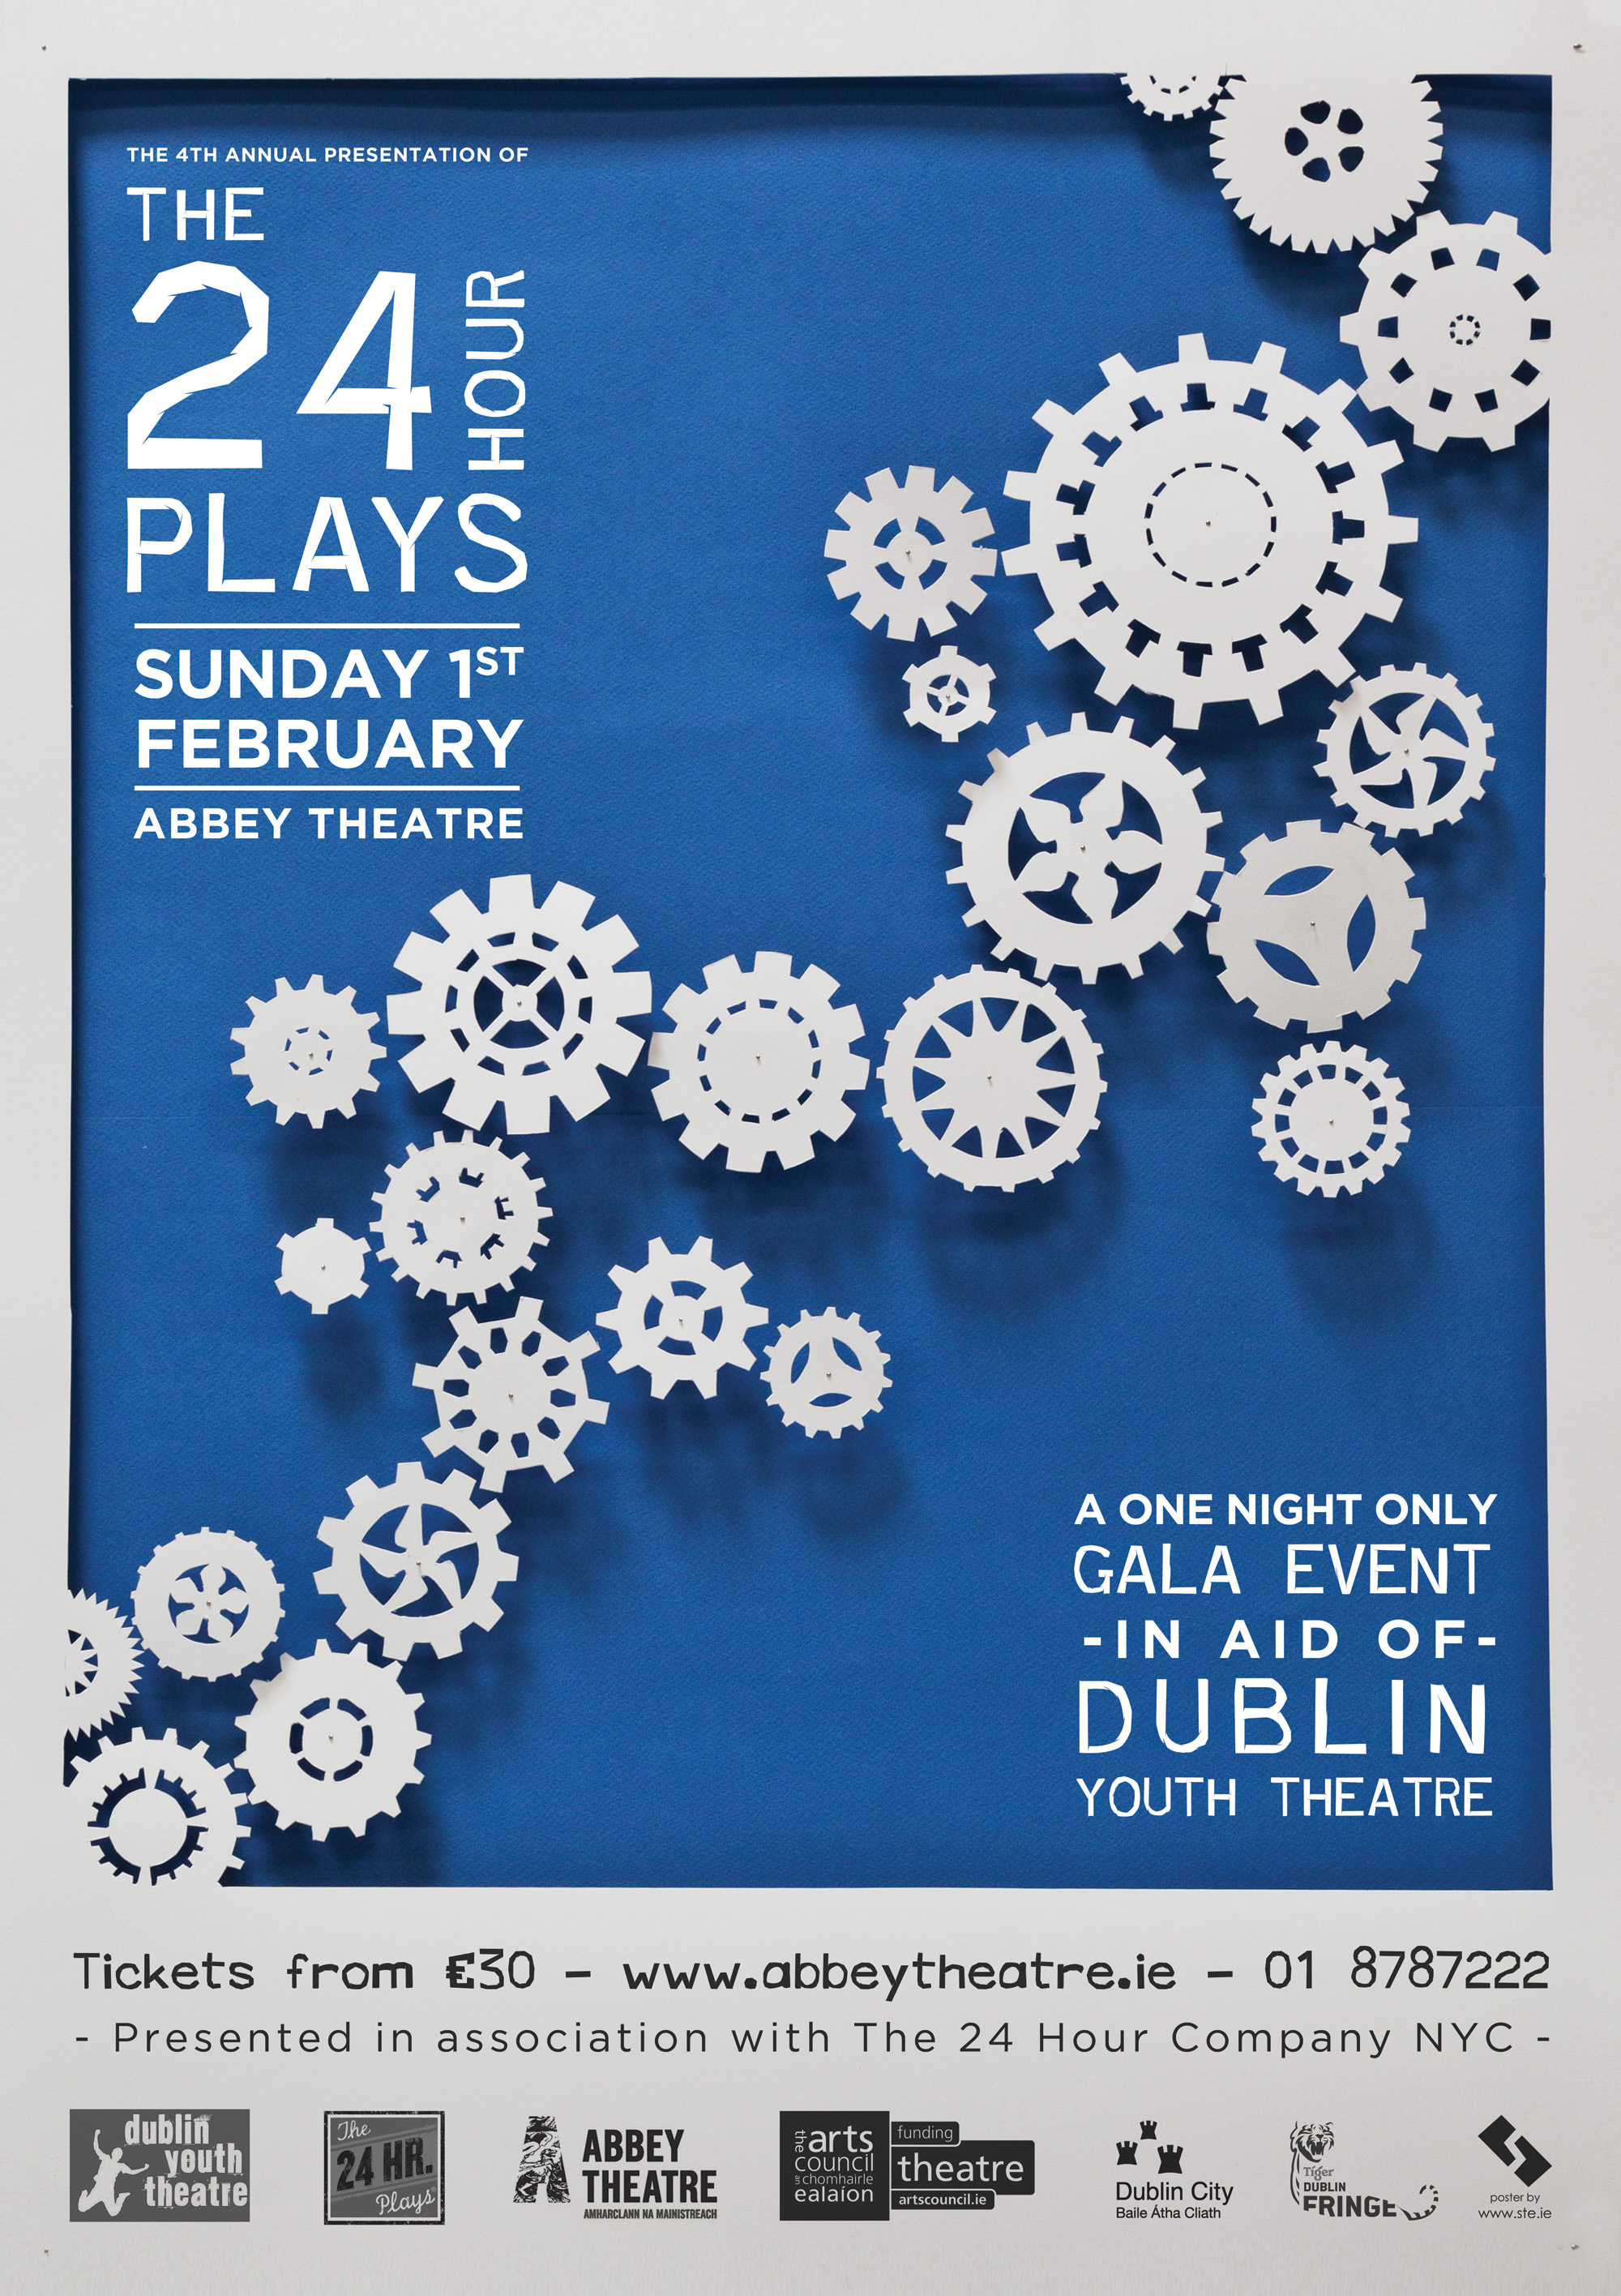 Poster for The 24 Hour Plays in aid of Dublin Youth Theatre